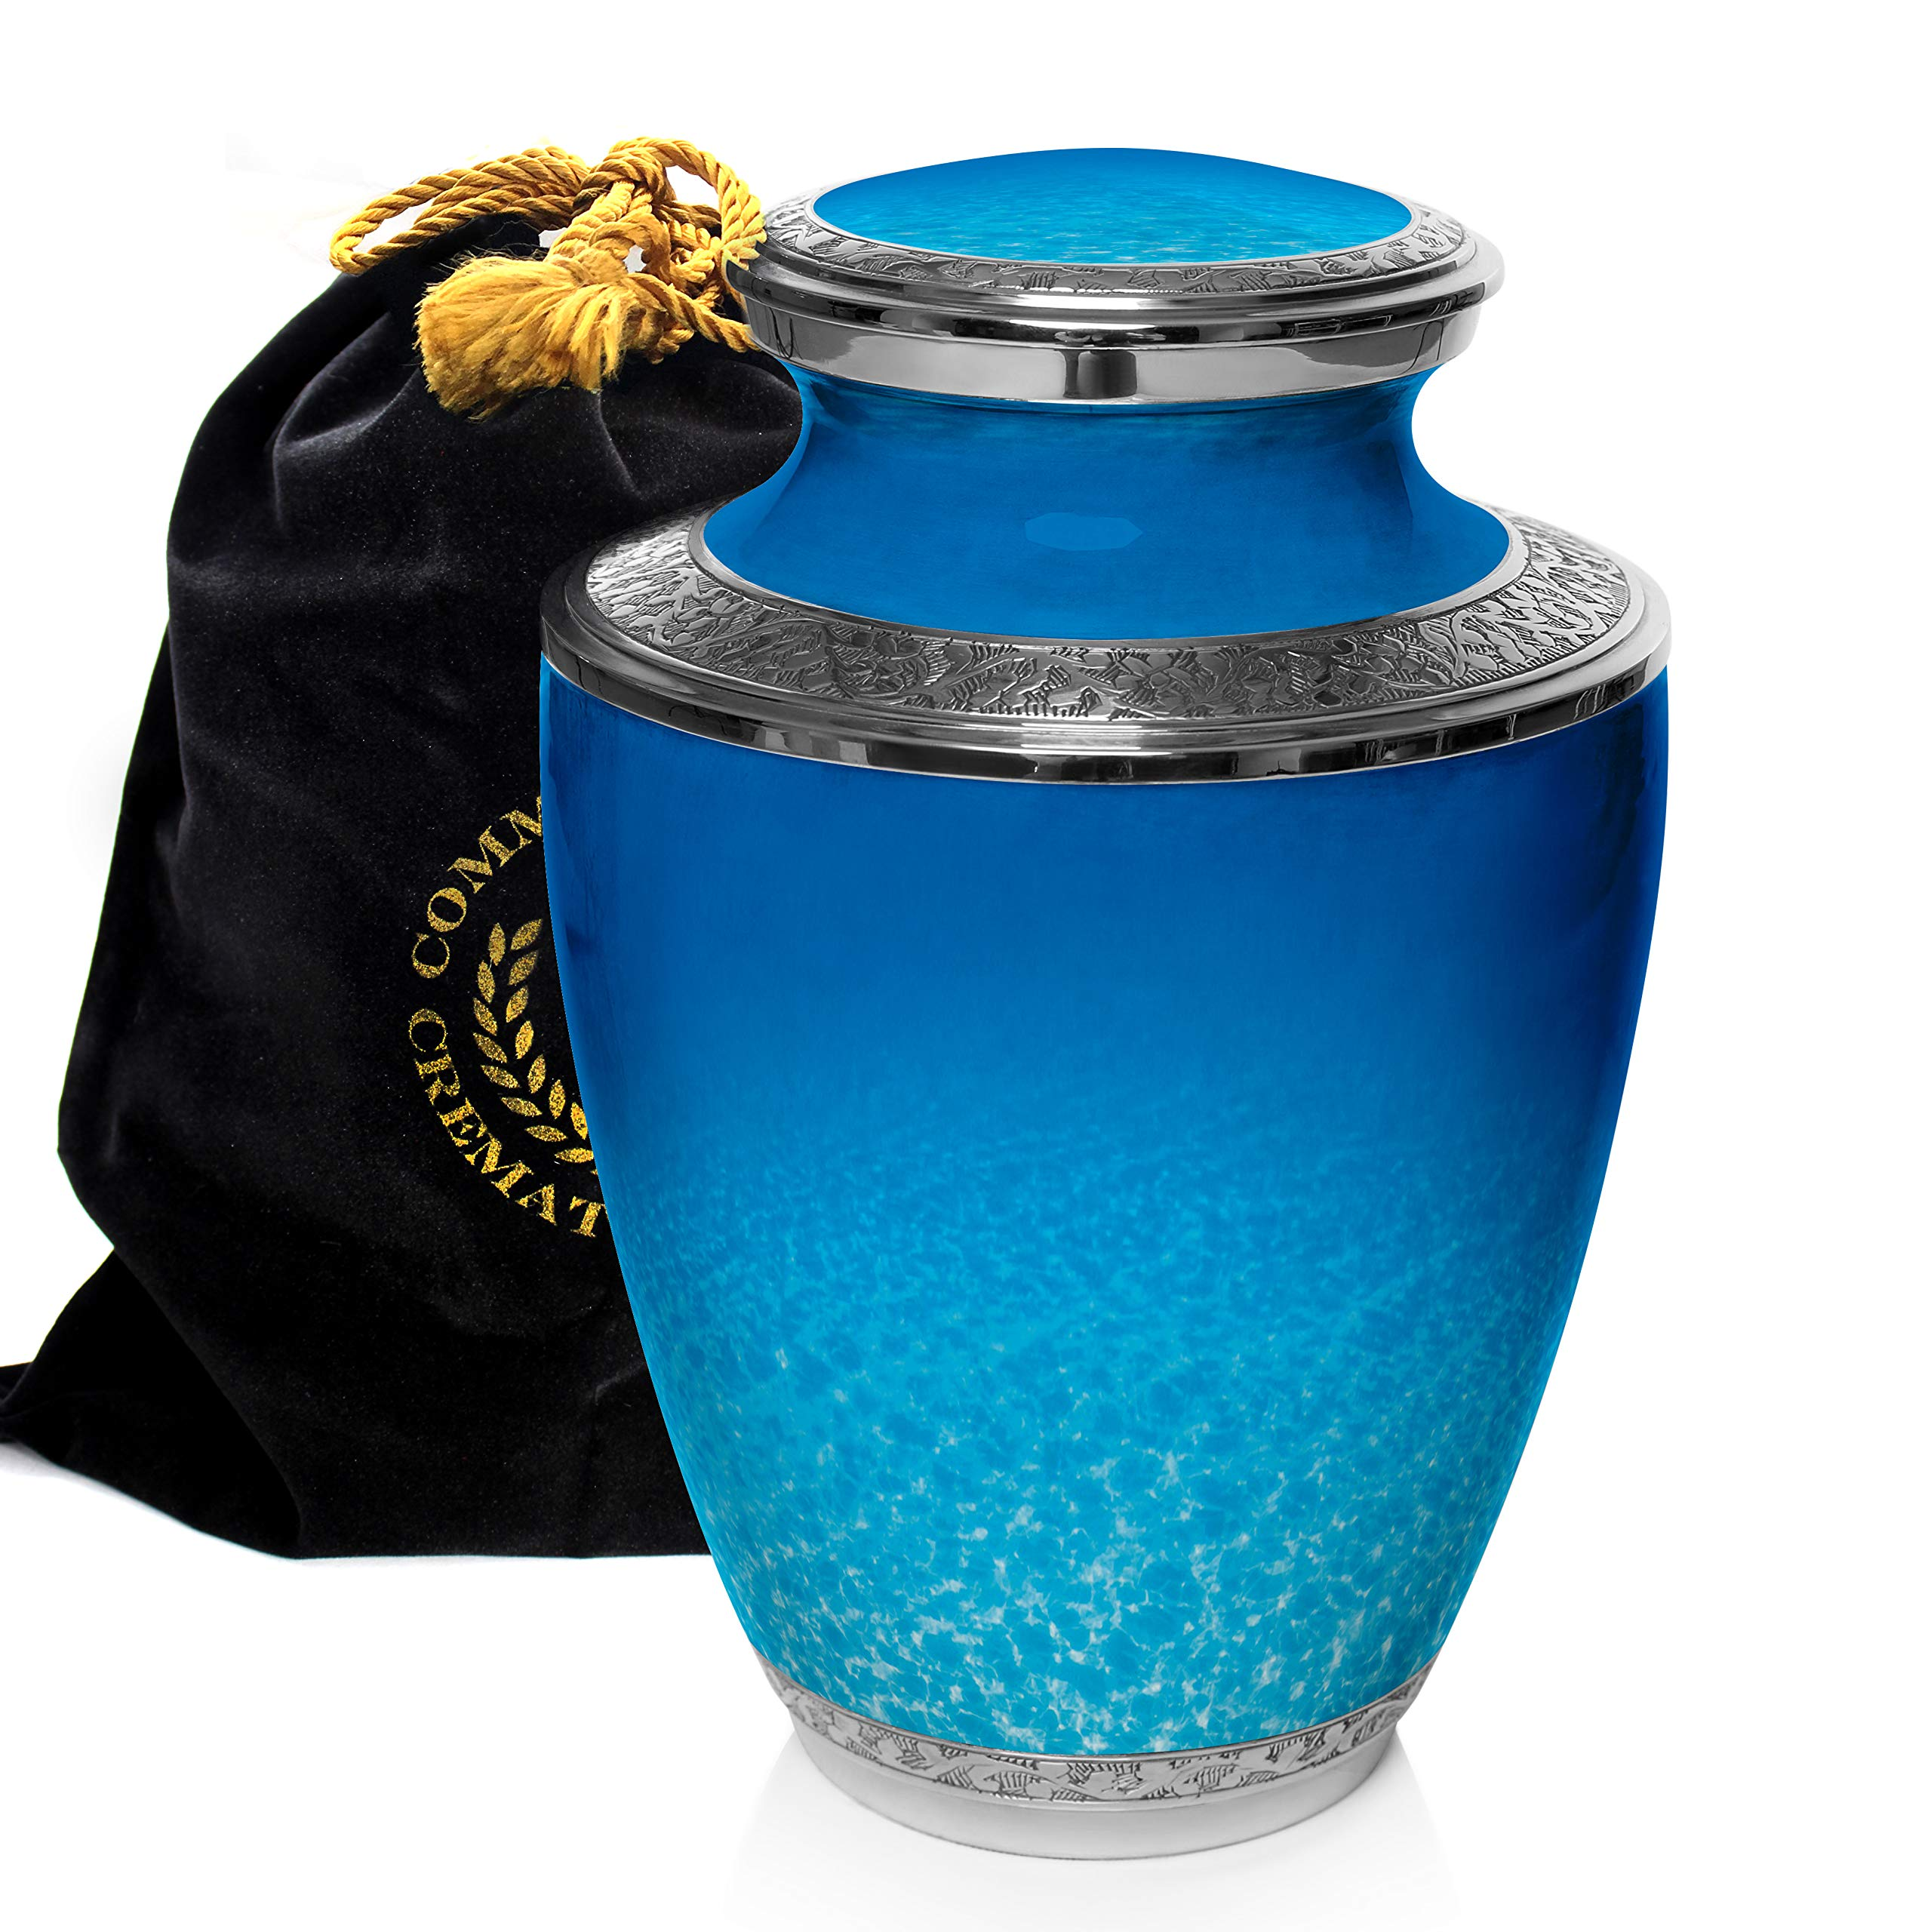 Ocean Tranquility Cremation Urns for Adult Ashes Ideal for Funeral, Burial, Columbarium or Home, Cremation Urns for Human Ashes Adult 200 Cubic Inches Urns for Ashes Large by Commemorative Cremation Urns (Image #1)